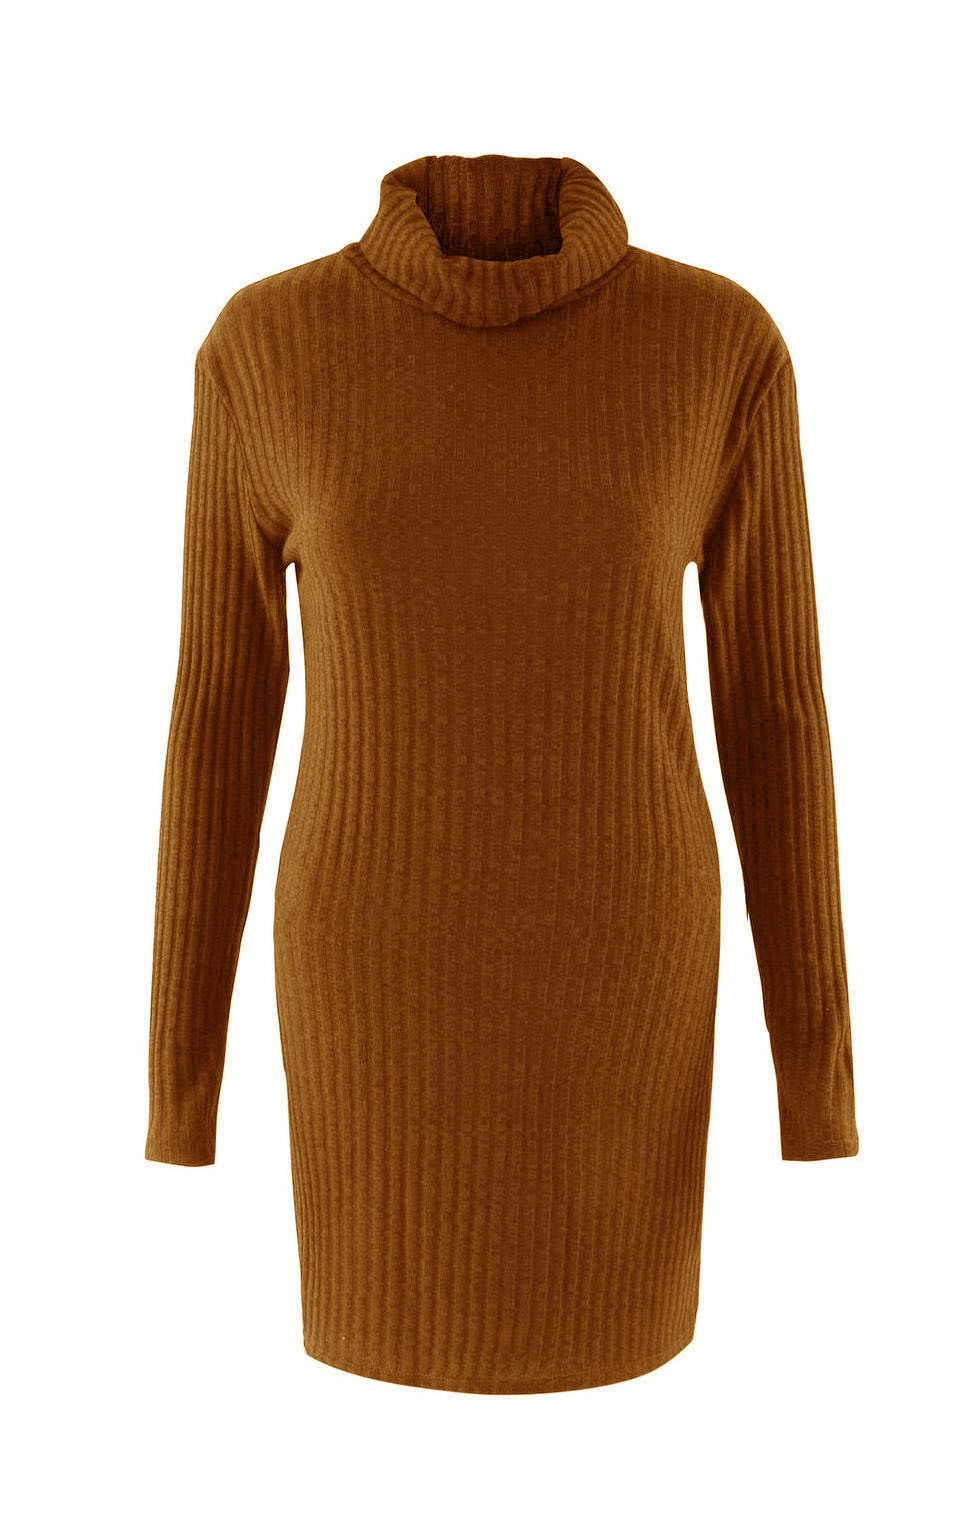 Turtleneck Long knitted pullover sweater, Women's Jumper, Casual Sweater 45